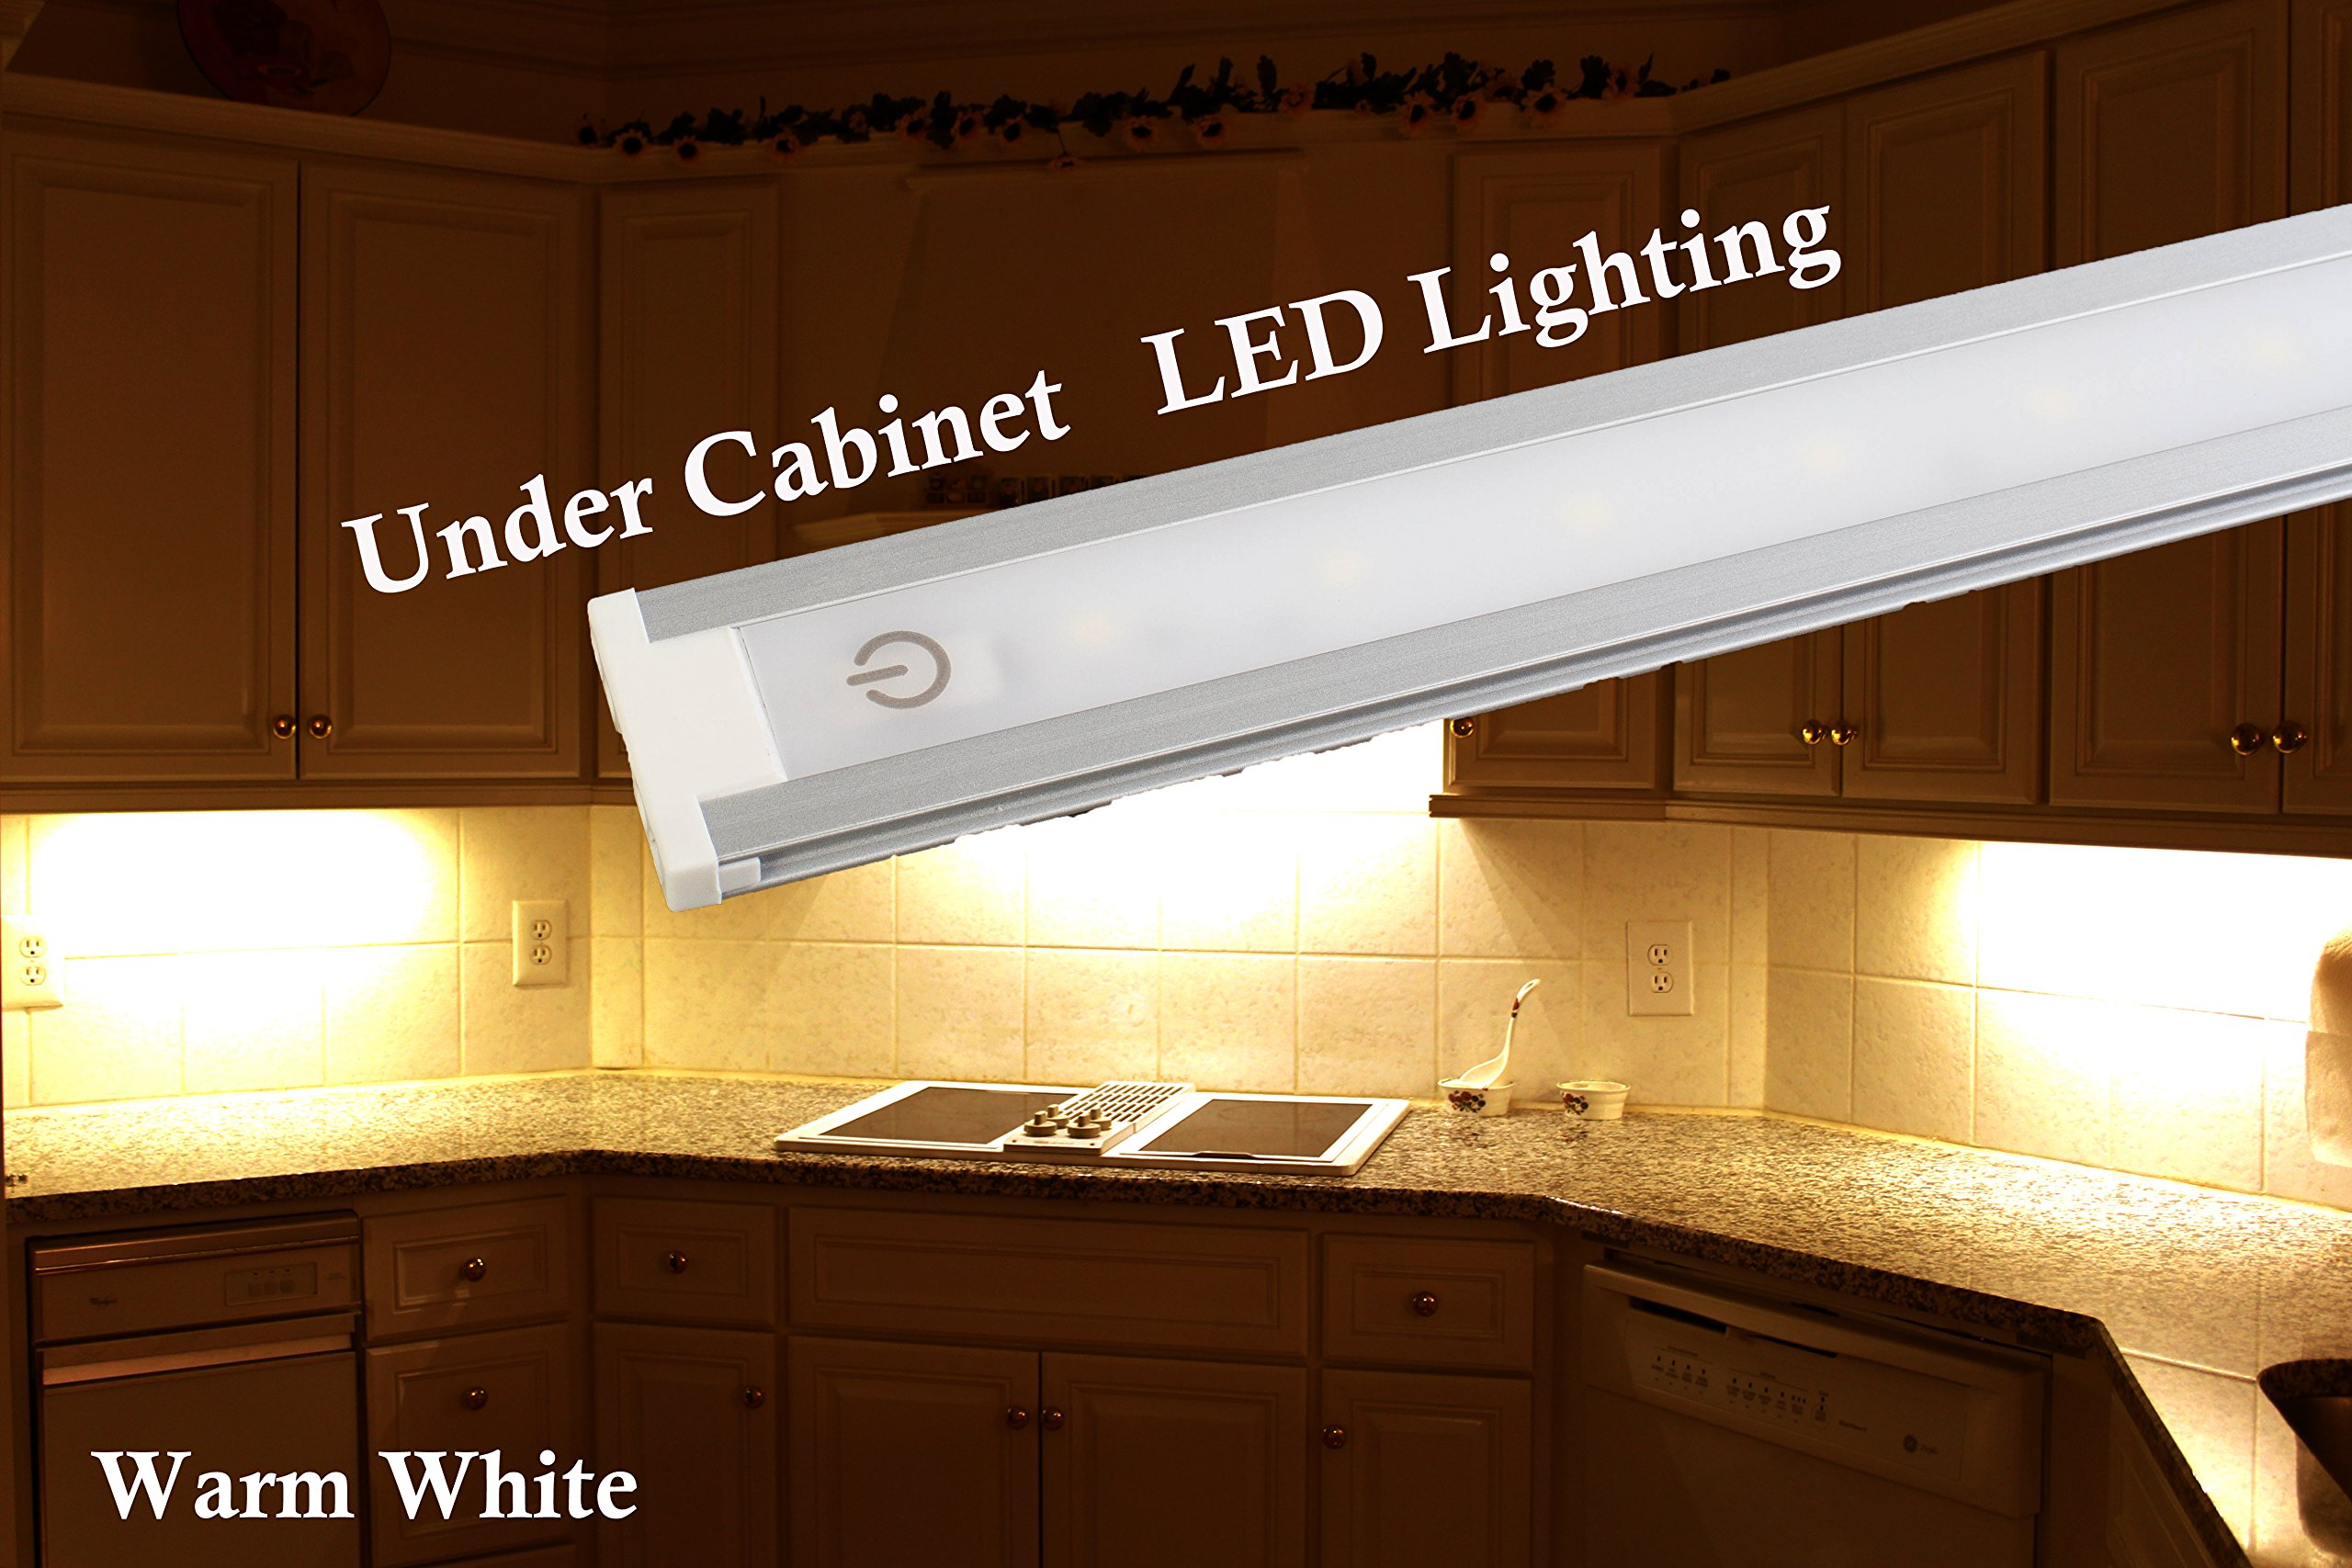 LEDupdates Under Cabinet Counter LED Light 24 inches with Touch on Off dim Switch for Work Shop, Pantry & Closet with UL Power Adapter Warm White by LEDUPDATES